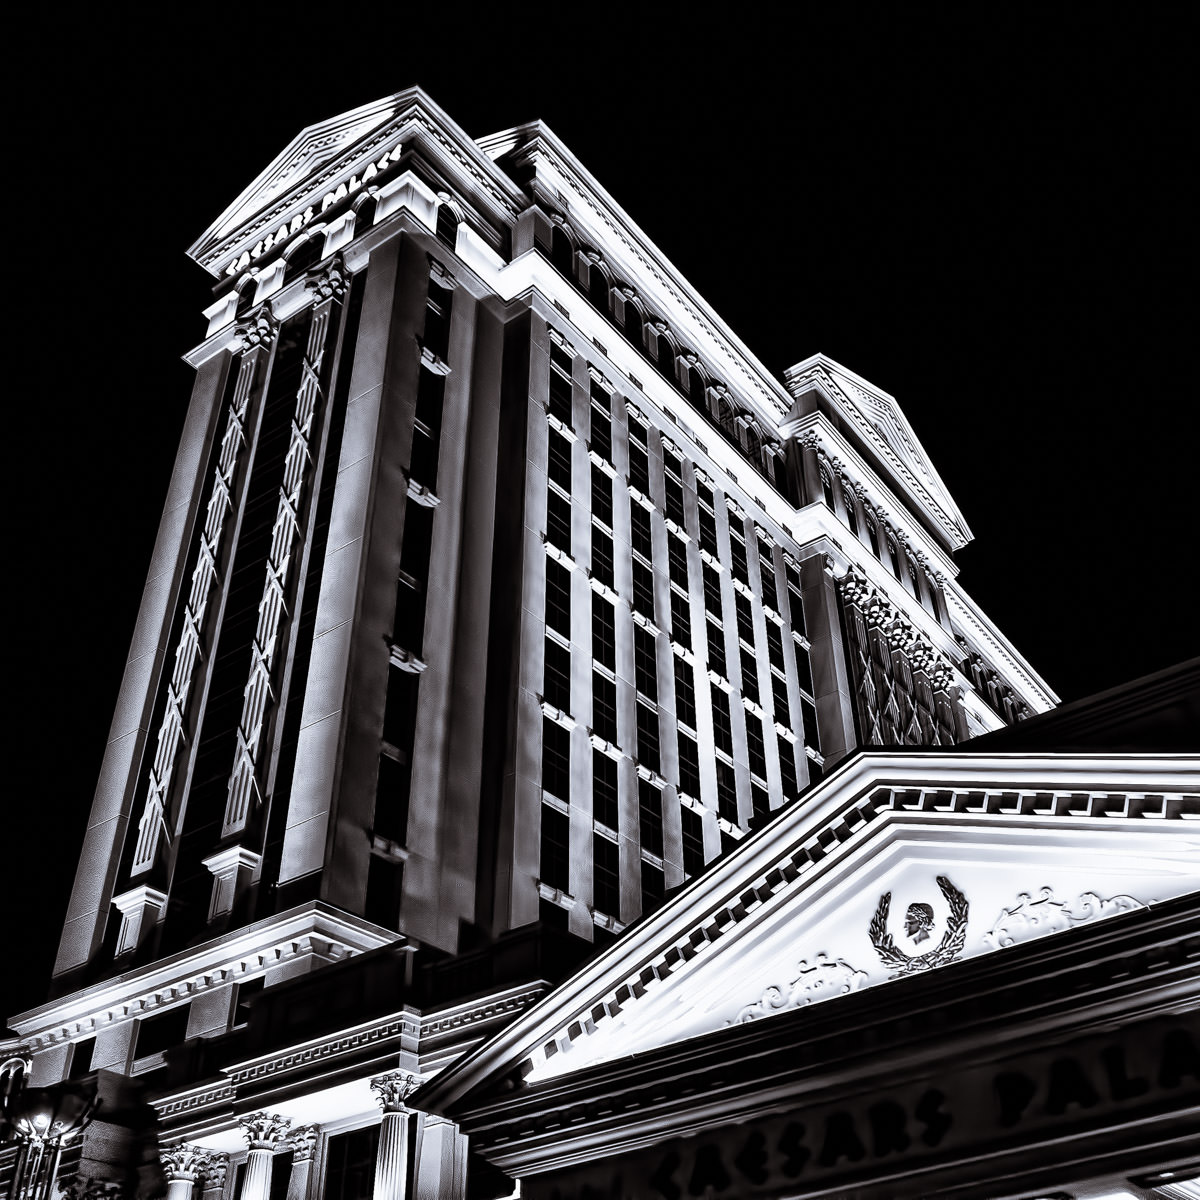 Caesars Palace's Augustus Tower rises into the night sky over Las Vegas.